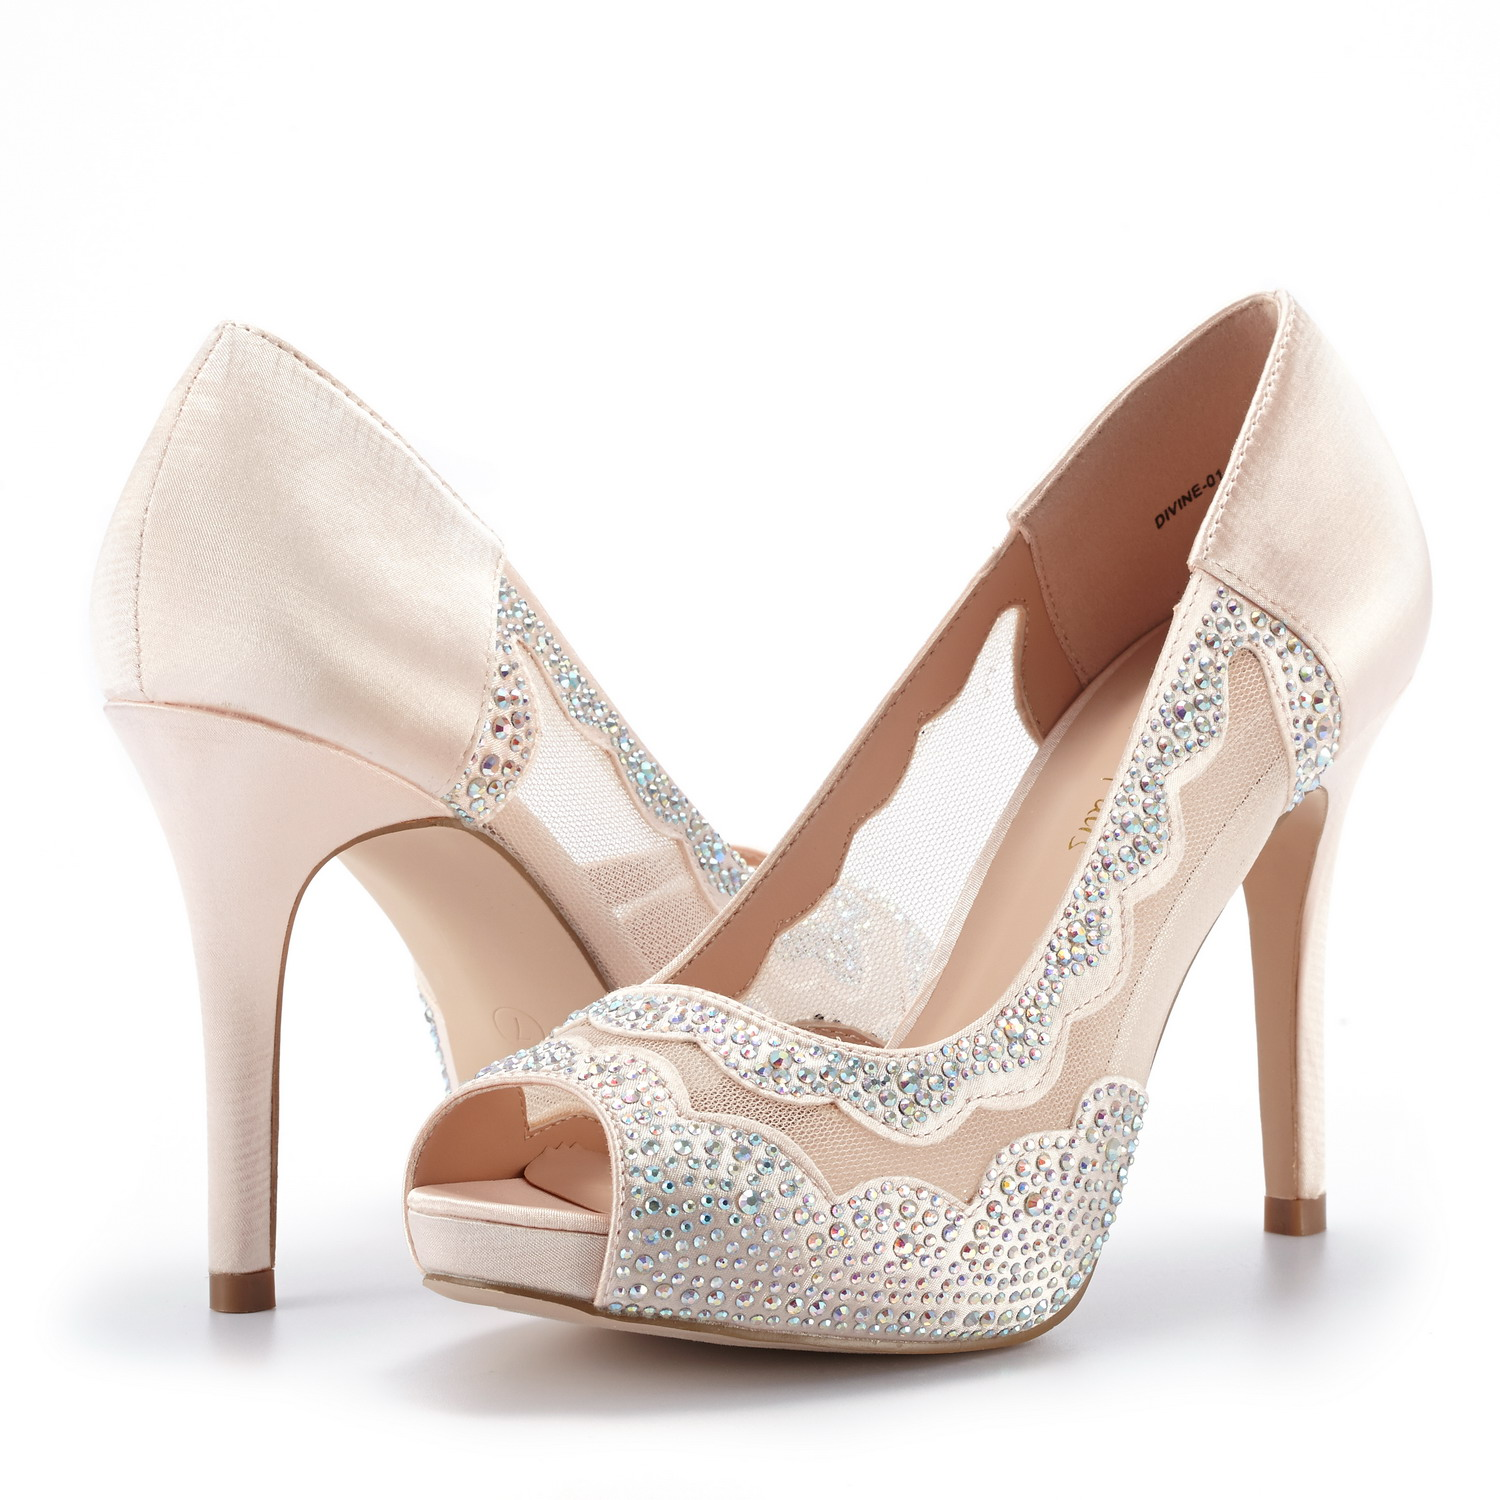 DREAM-PAIRS-Women-Divine-01-Peep-Toe-Dress-Wedding-High-Heels-Pump-Shoes-Sandals thumbnail 19